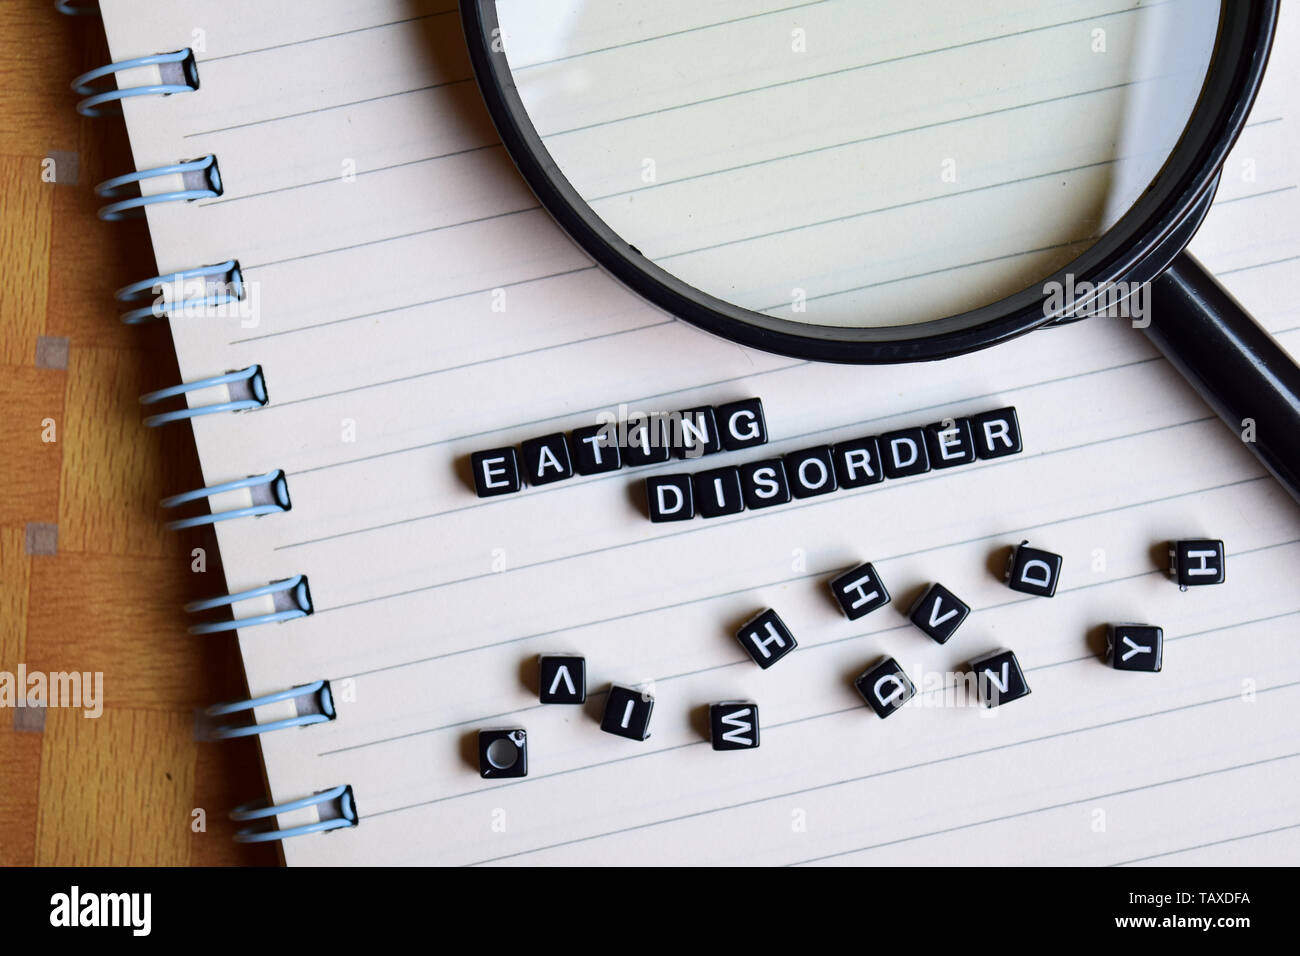 Eating Disorder on wooden block and magnifying glass. Motivation concept - Stock Image